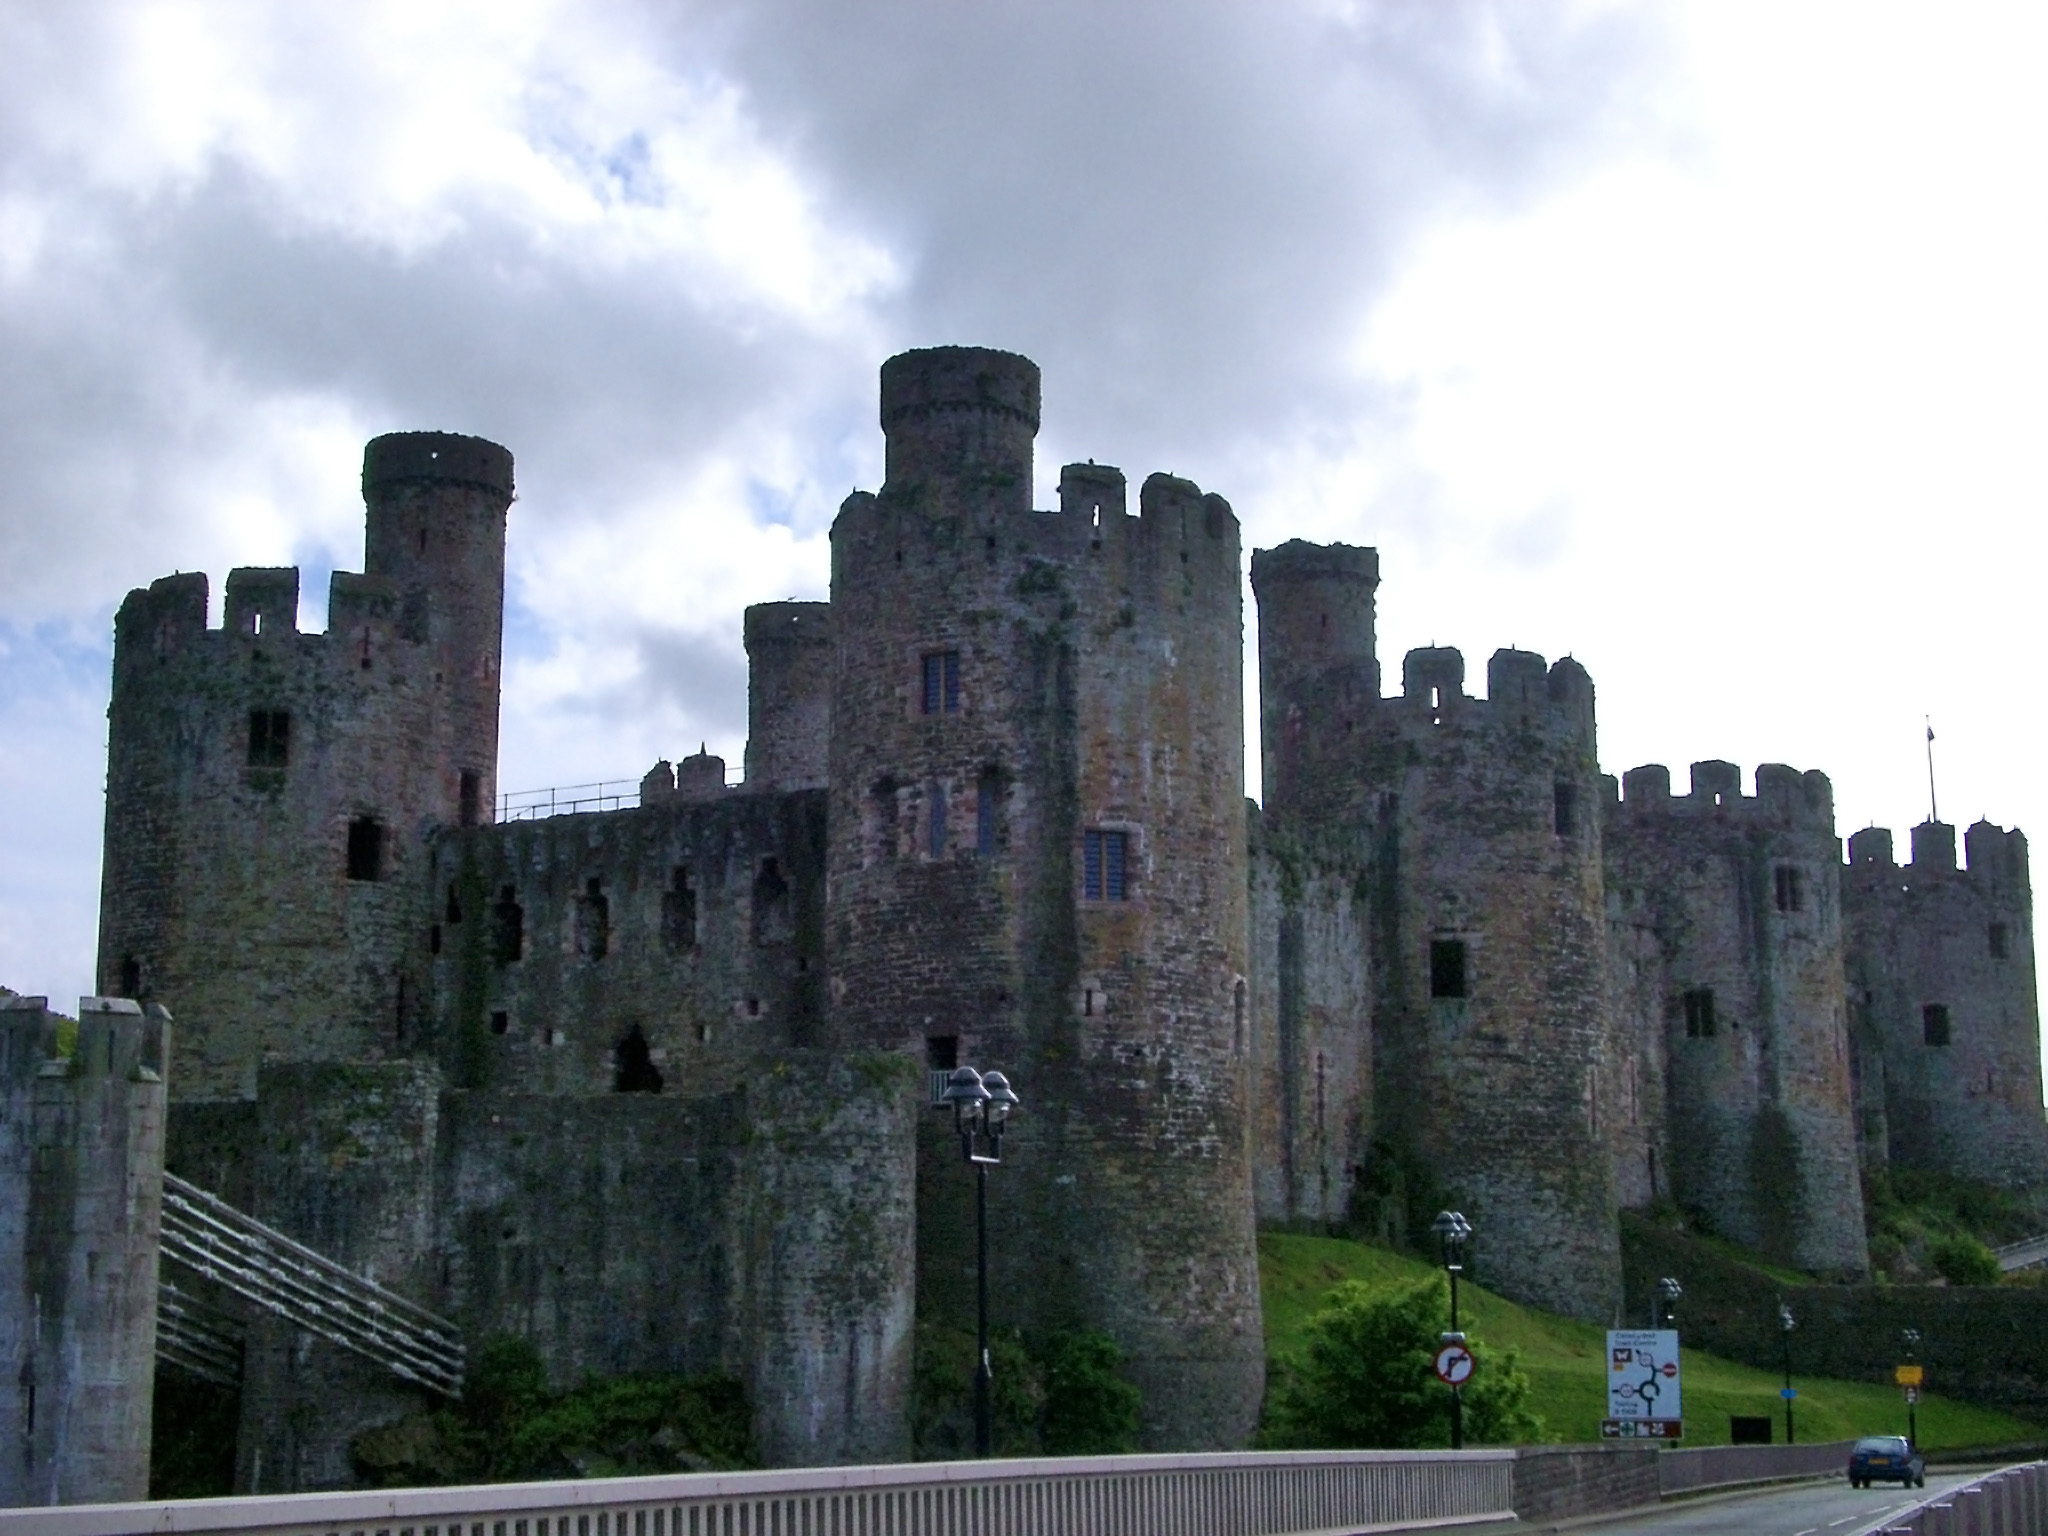 Conwy Castle - Famous Ancient Landmark of Conway, Wales on a Grassy Landscape.